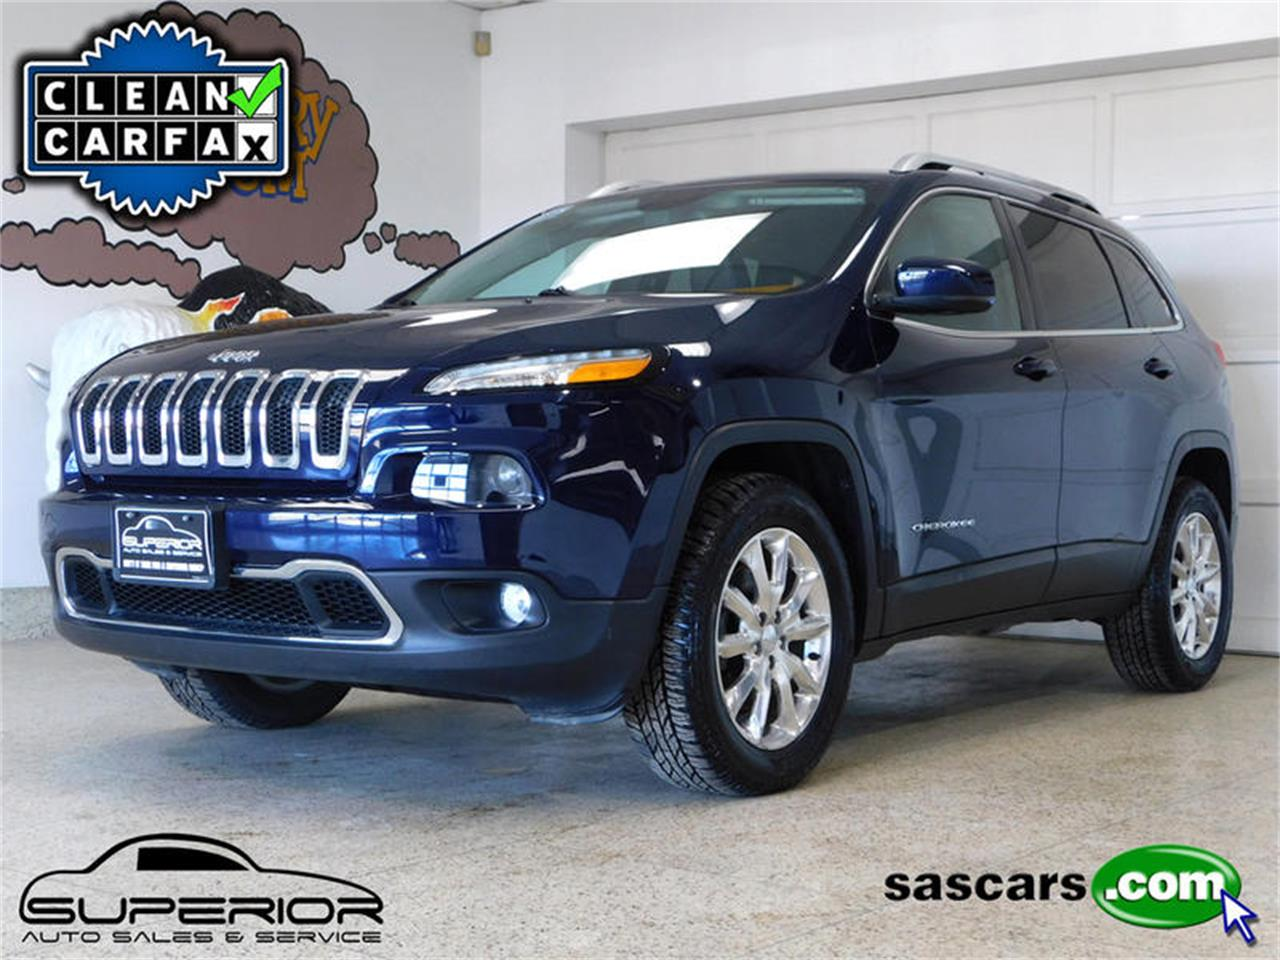 Large Picture of 2014 Jeep Cherokee located in New York - PQXB